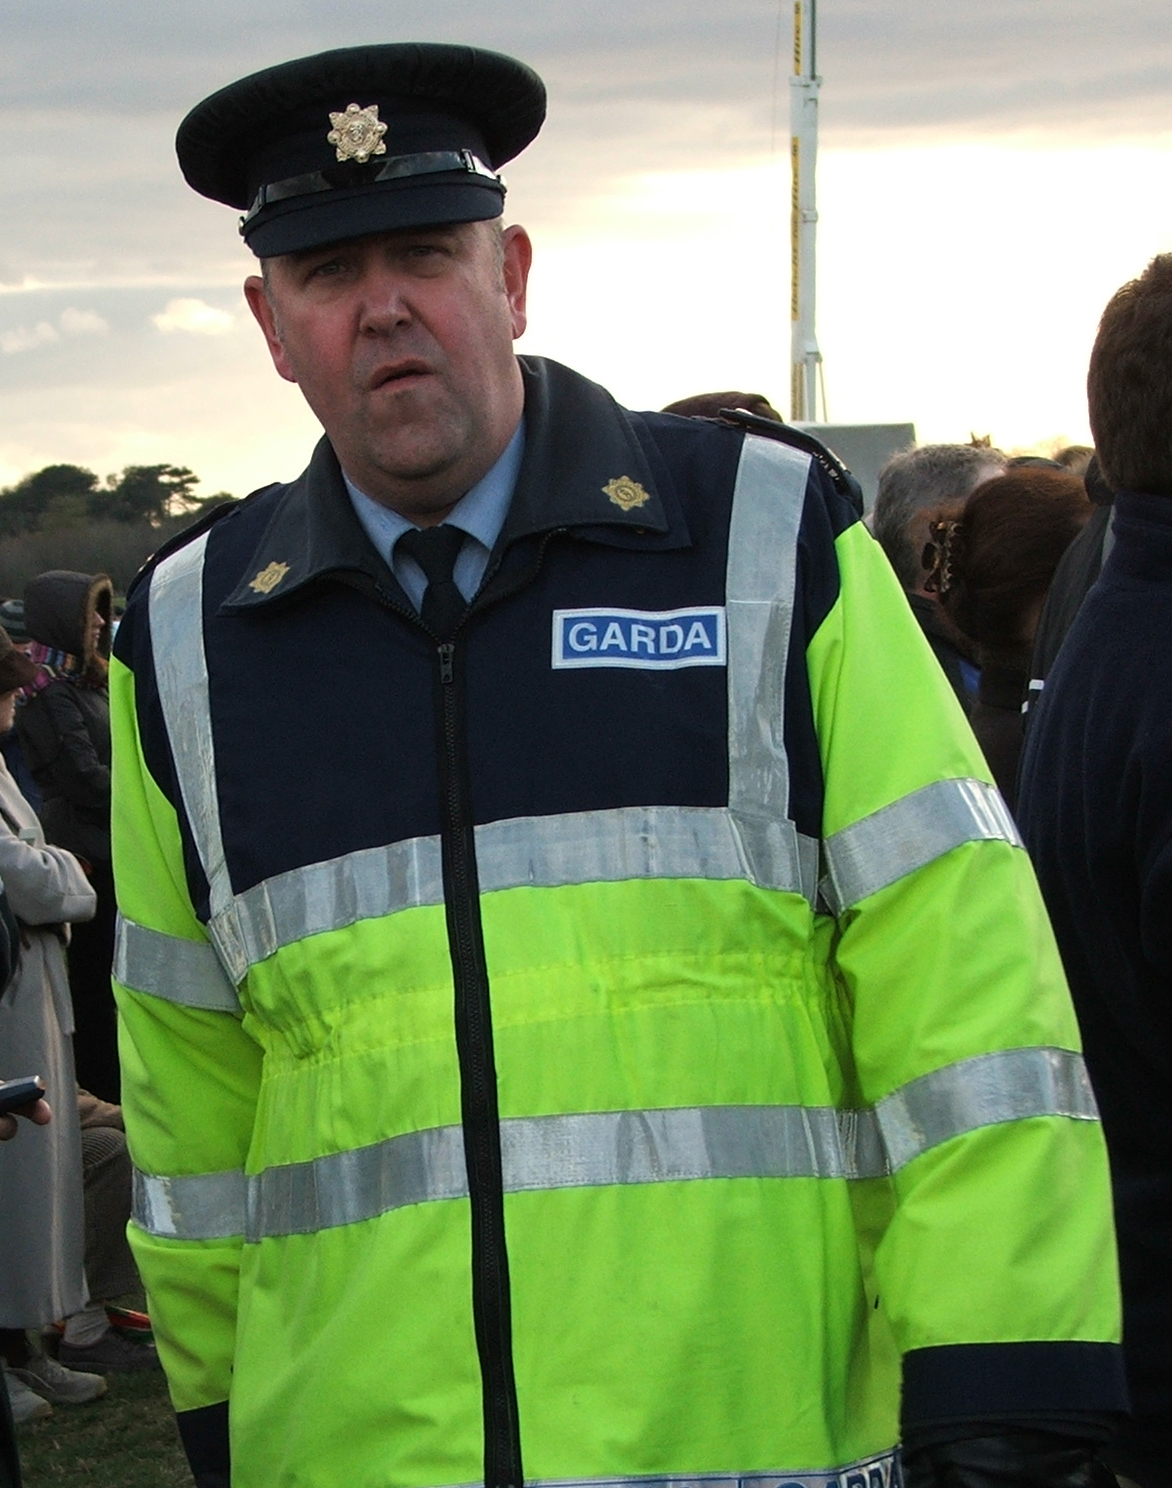 Uniform dating ireland